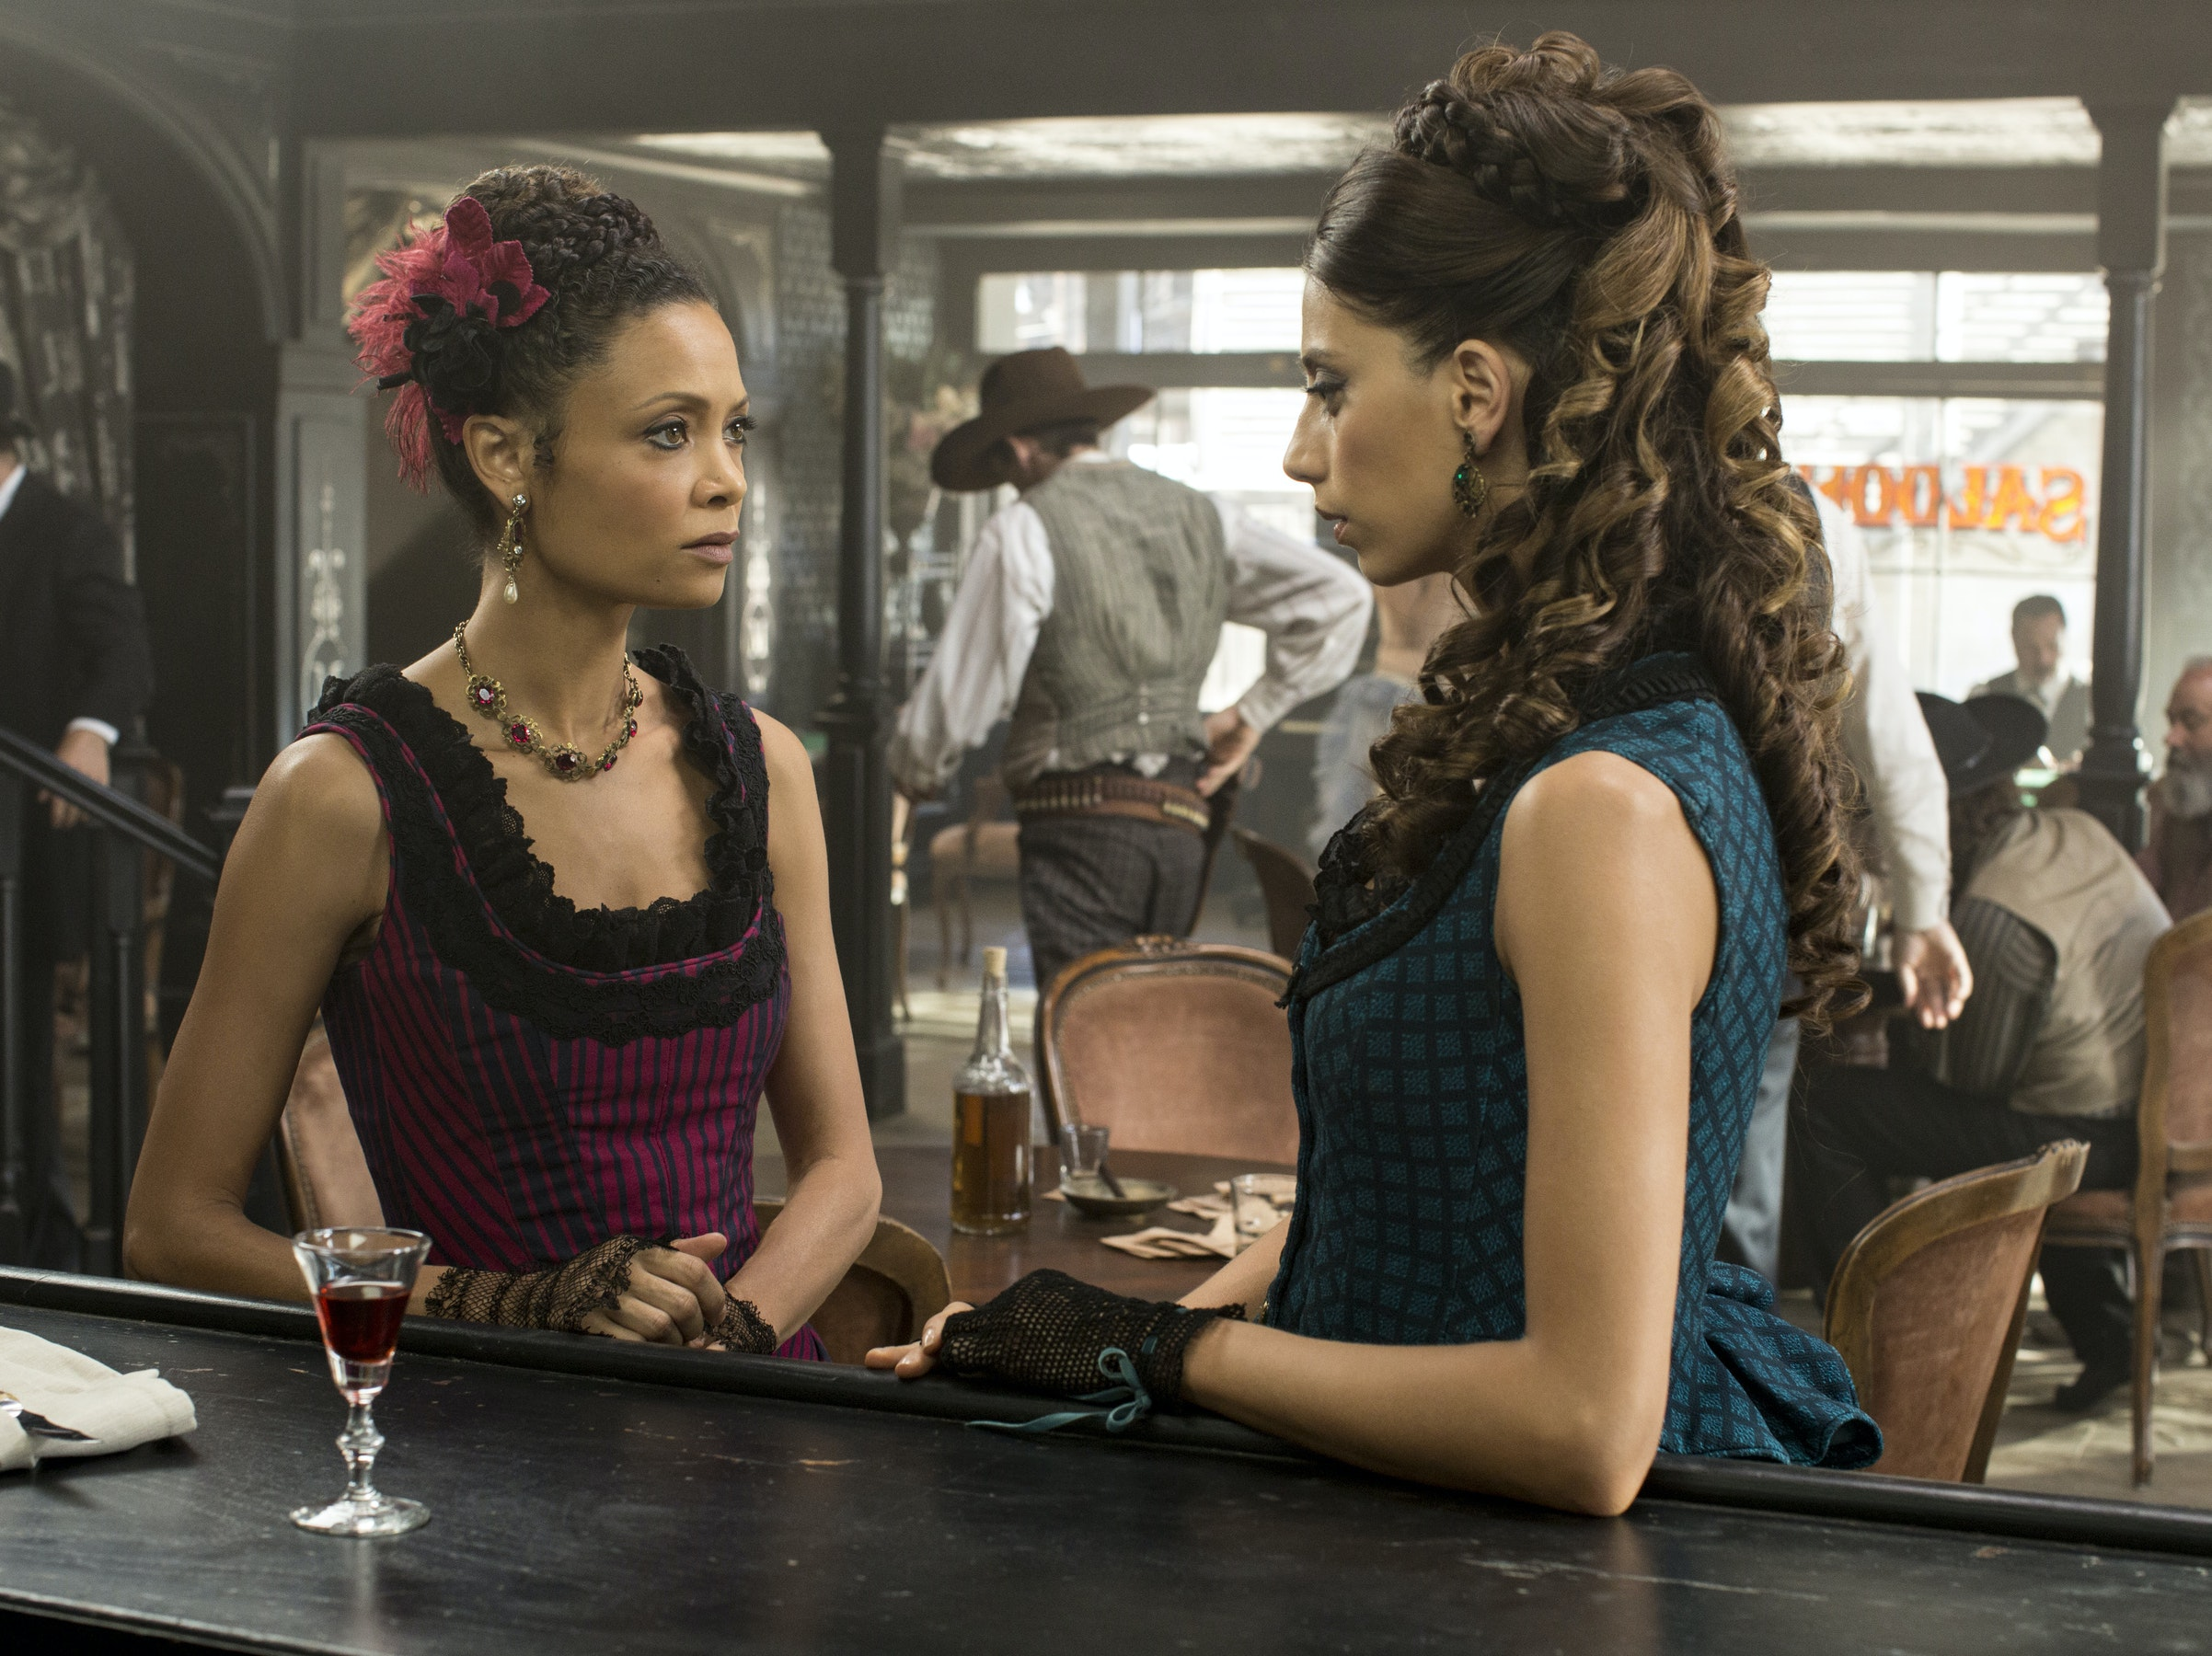 Twists Aside, Westworld's Greatest Success Is Female Agency